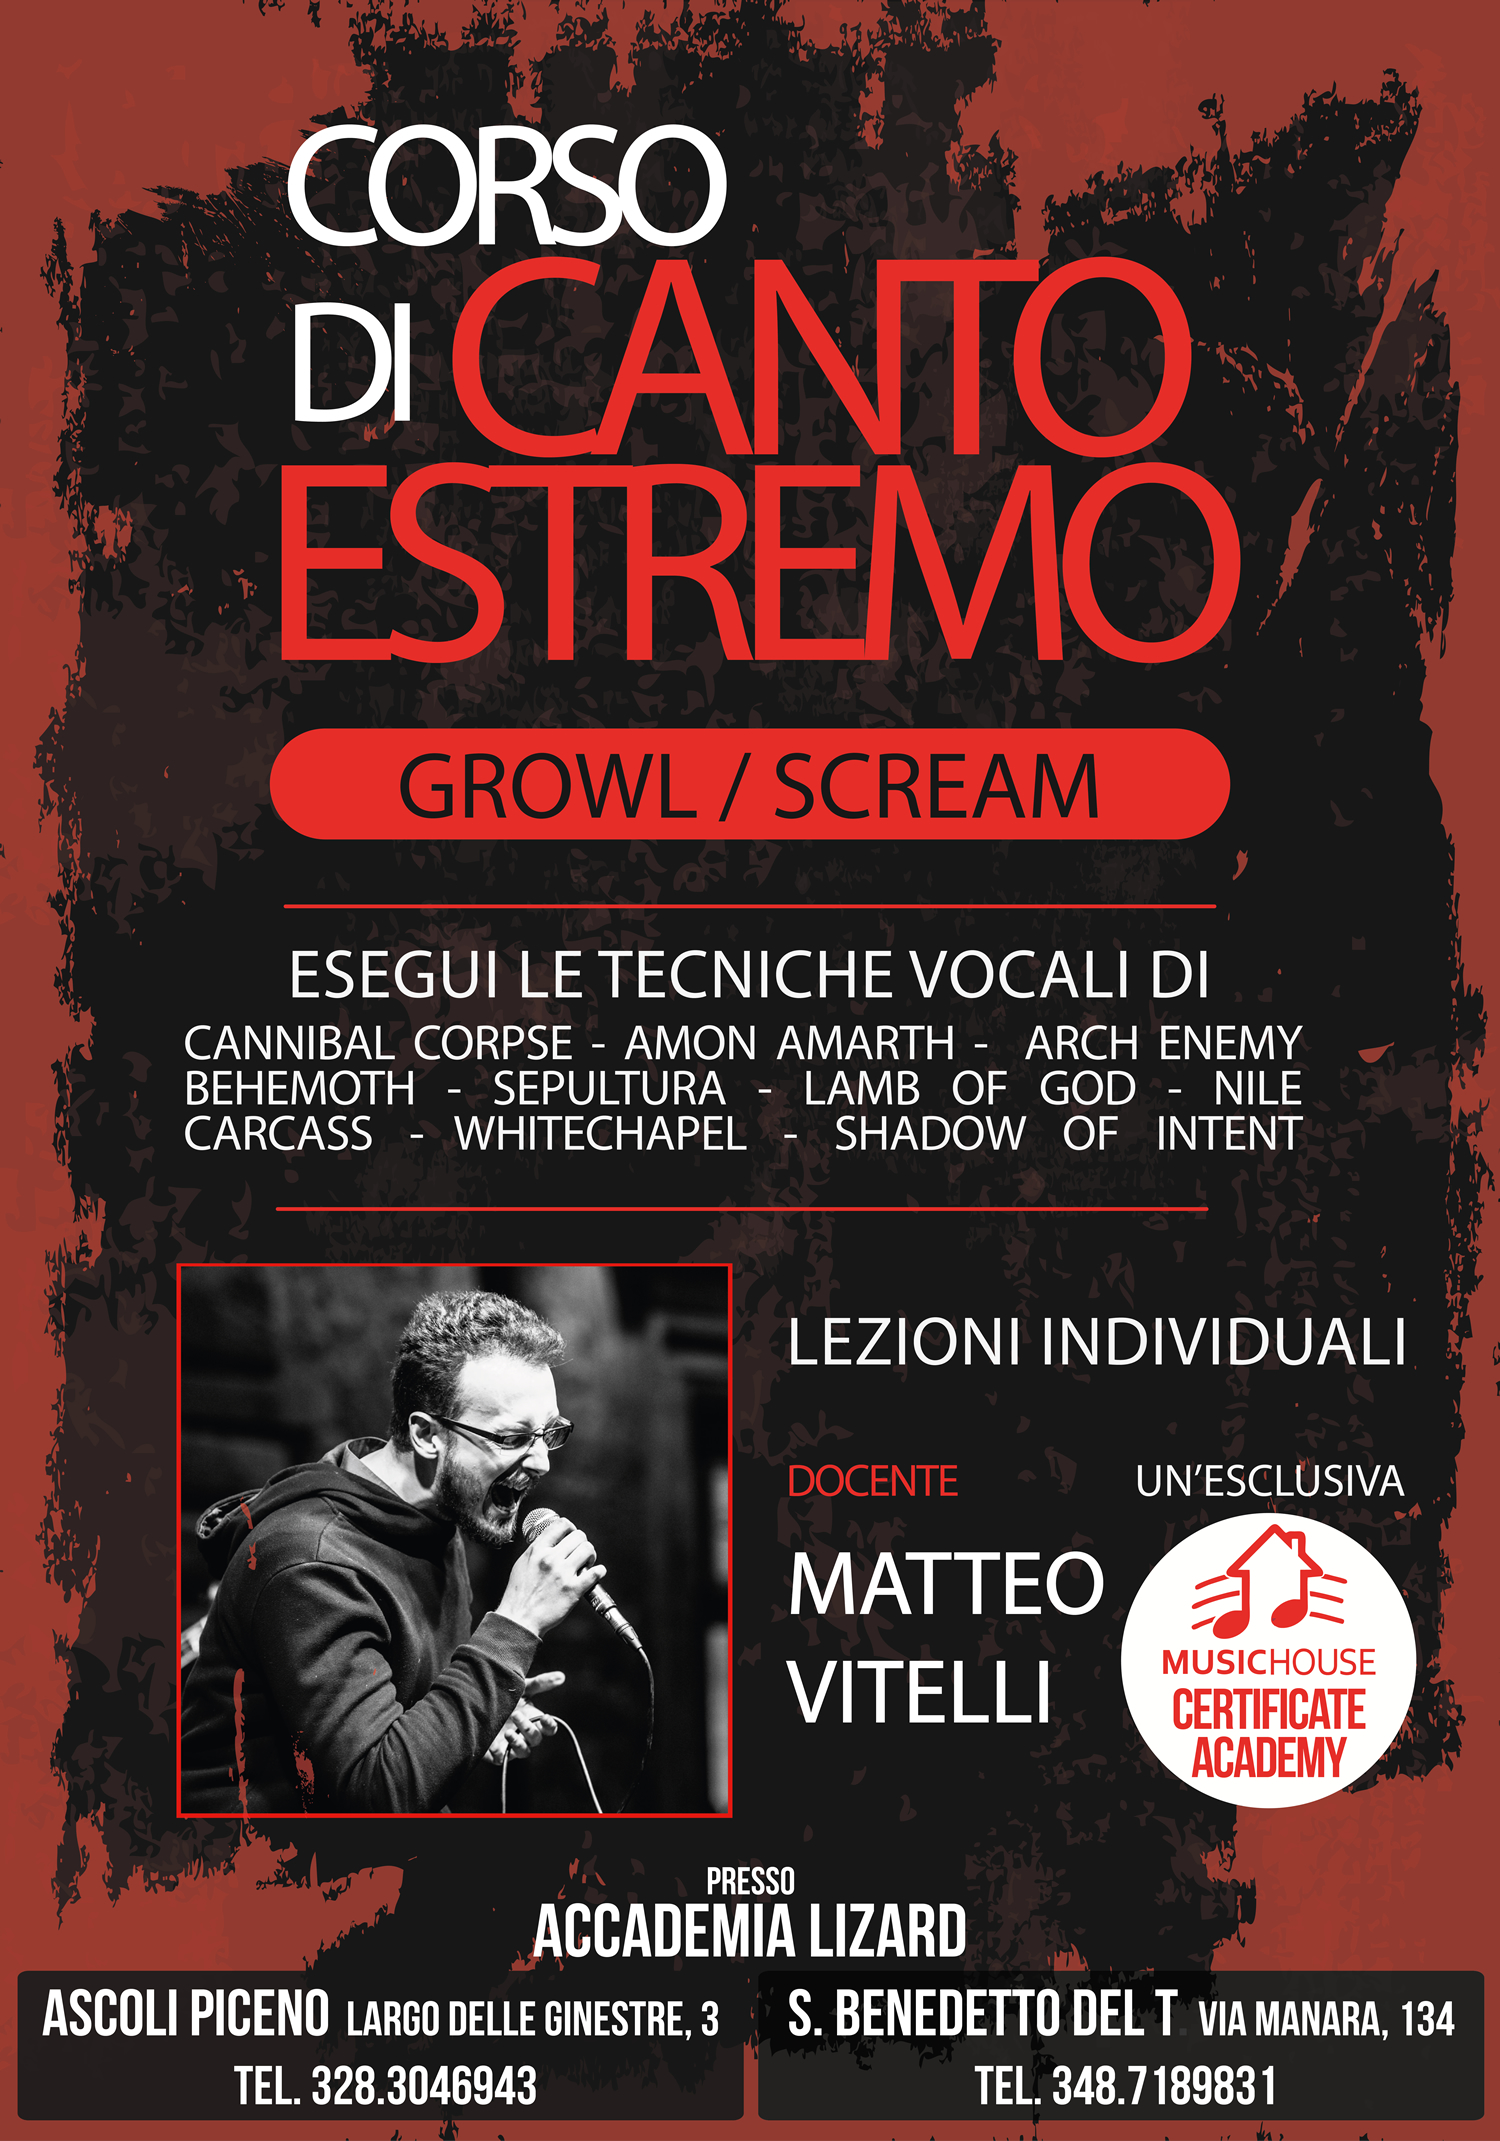 Corso di Canto Estremo - Growl Scream